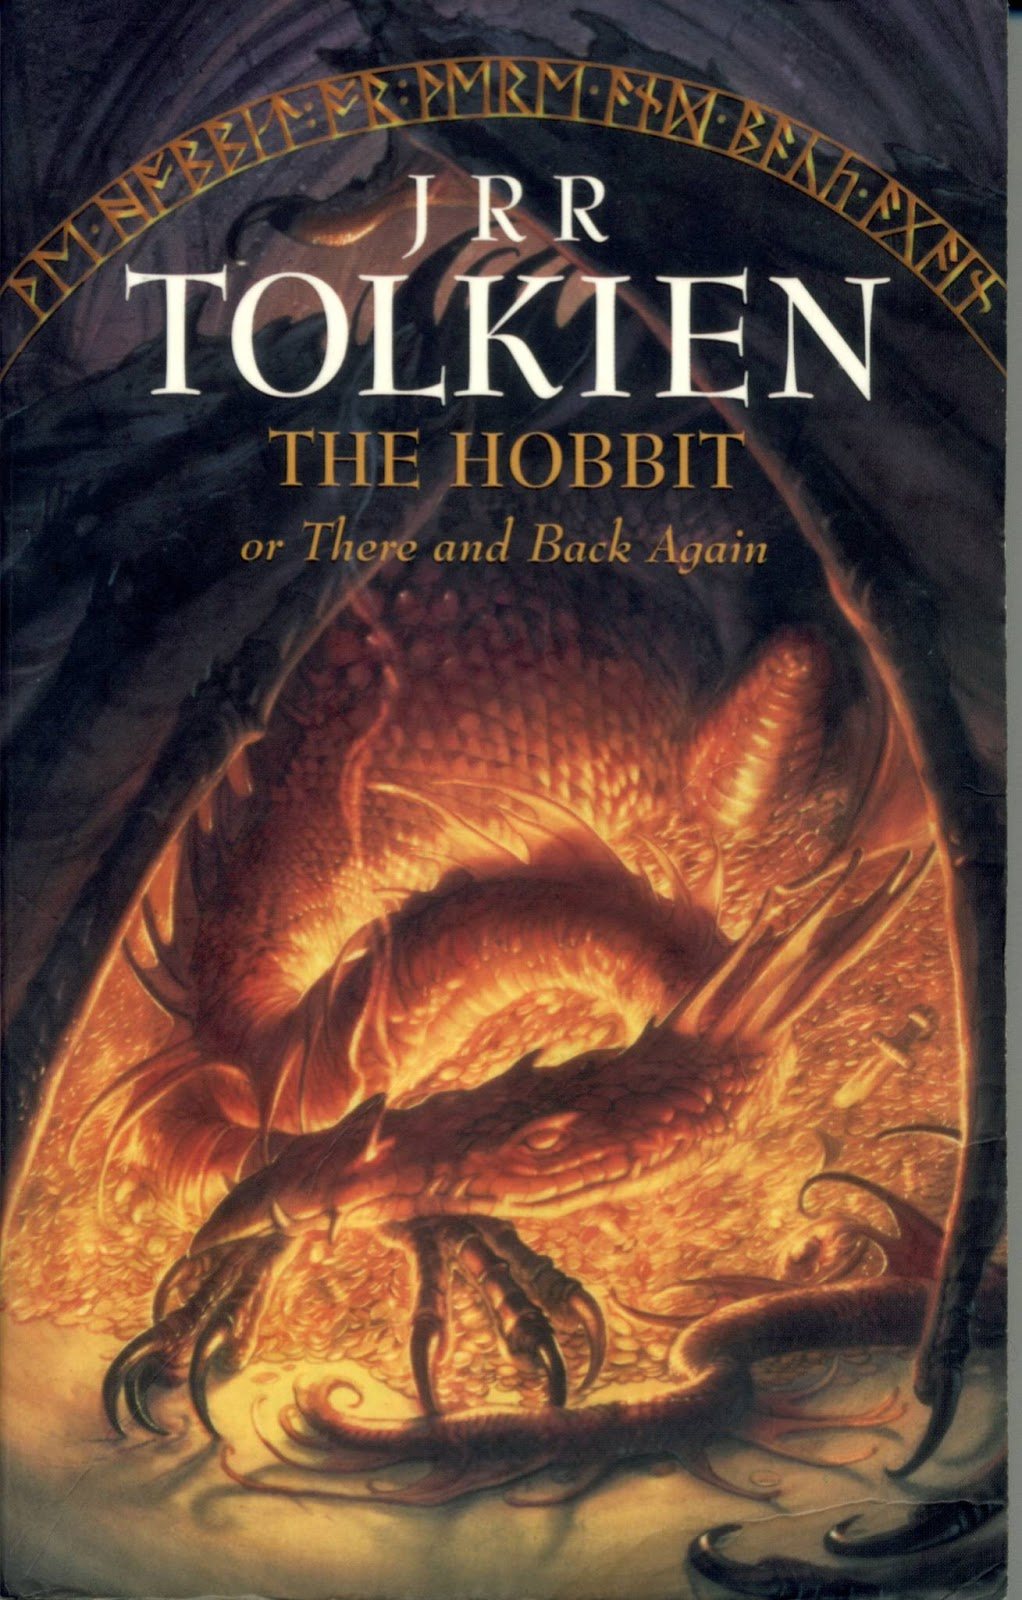 a summary of j r r tolkiens novel the hobbit The story of kullervo, written in 1915, was inspired by 19th-century finnish poem, and influenced his later novel the silmarillion.